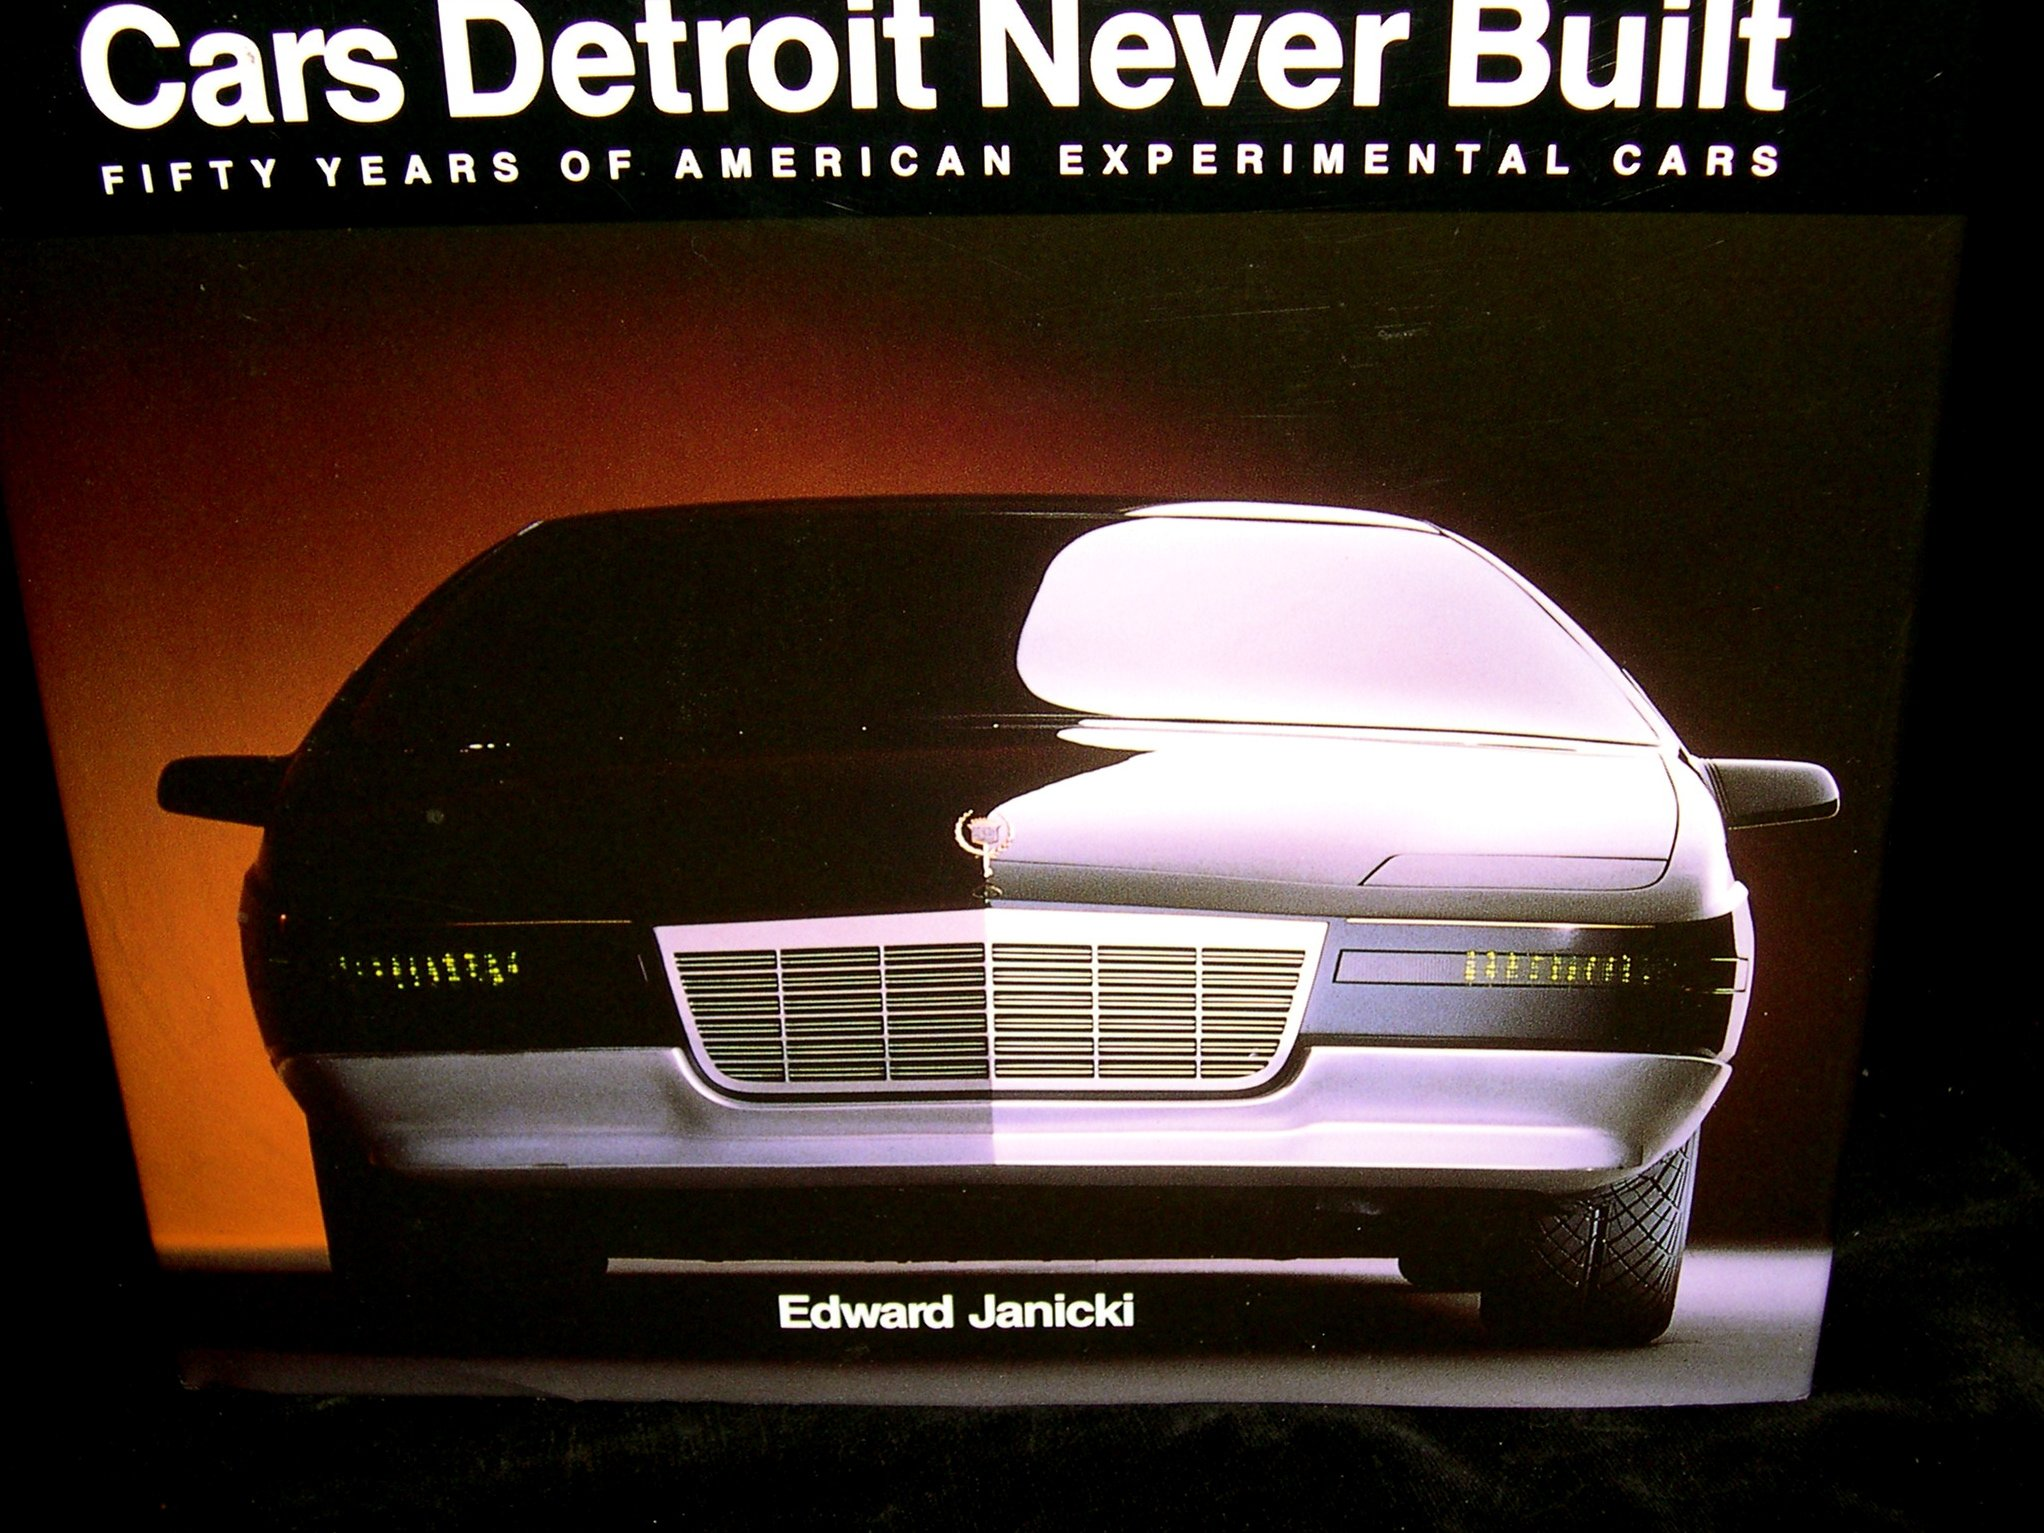 Amazon.com: Cars Detroit Never Built: 50 Years of American ...